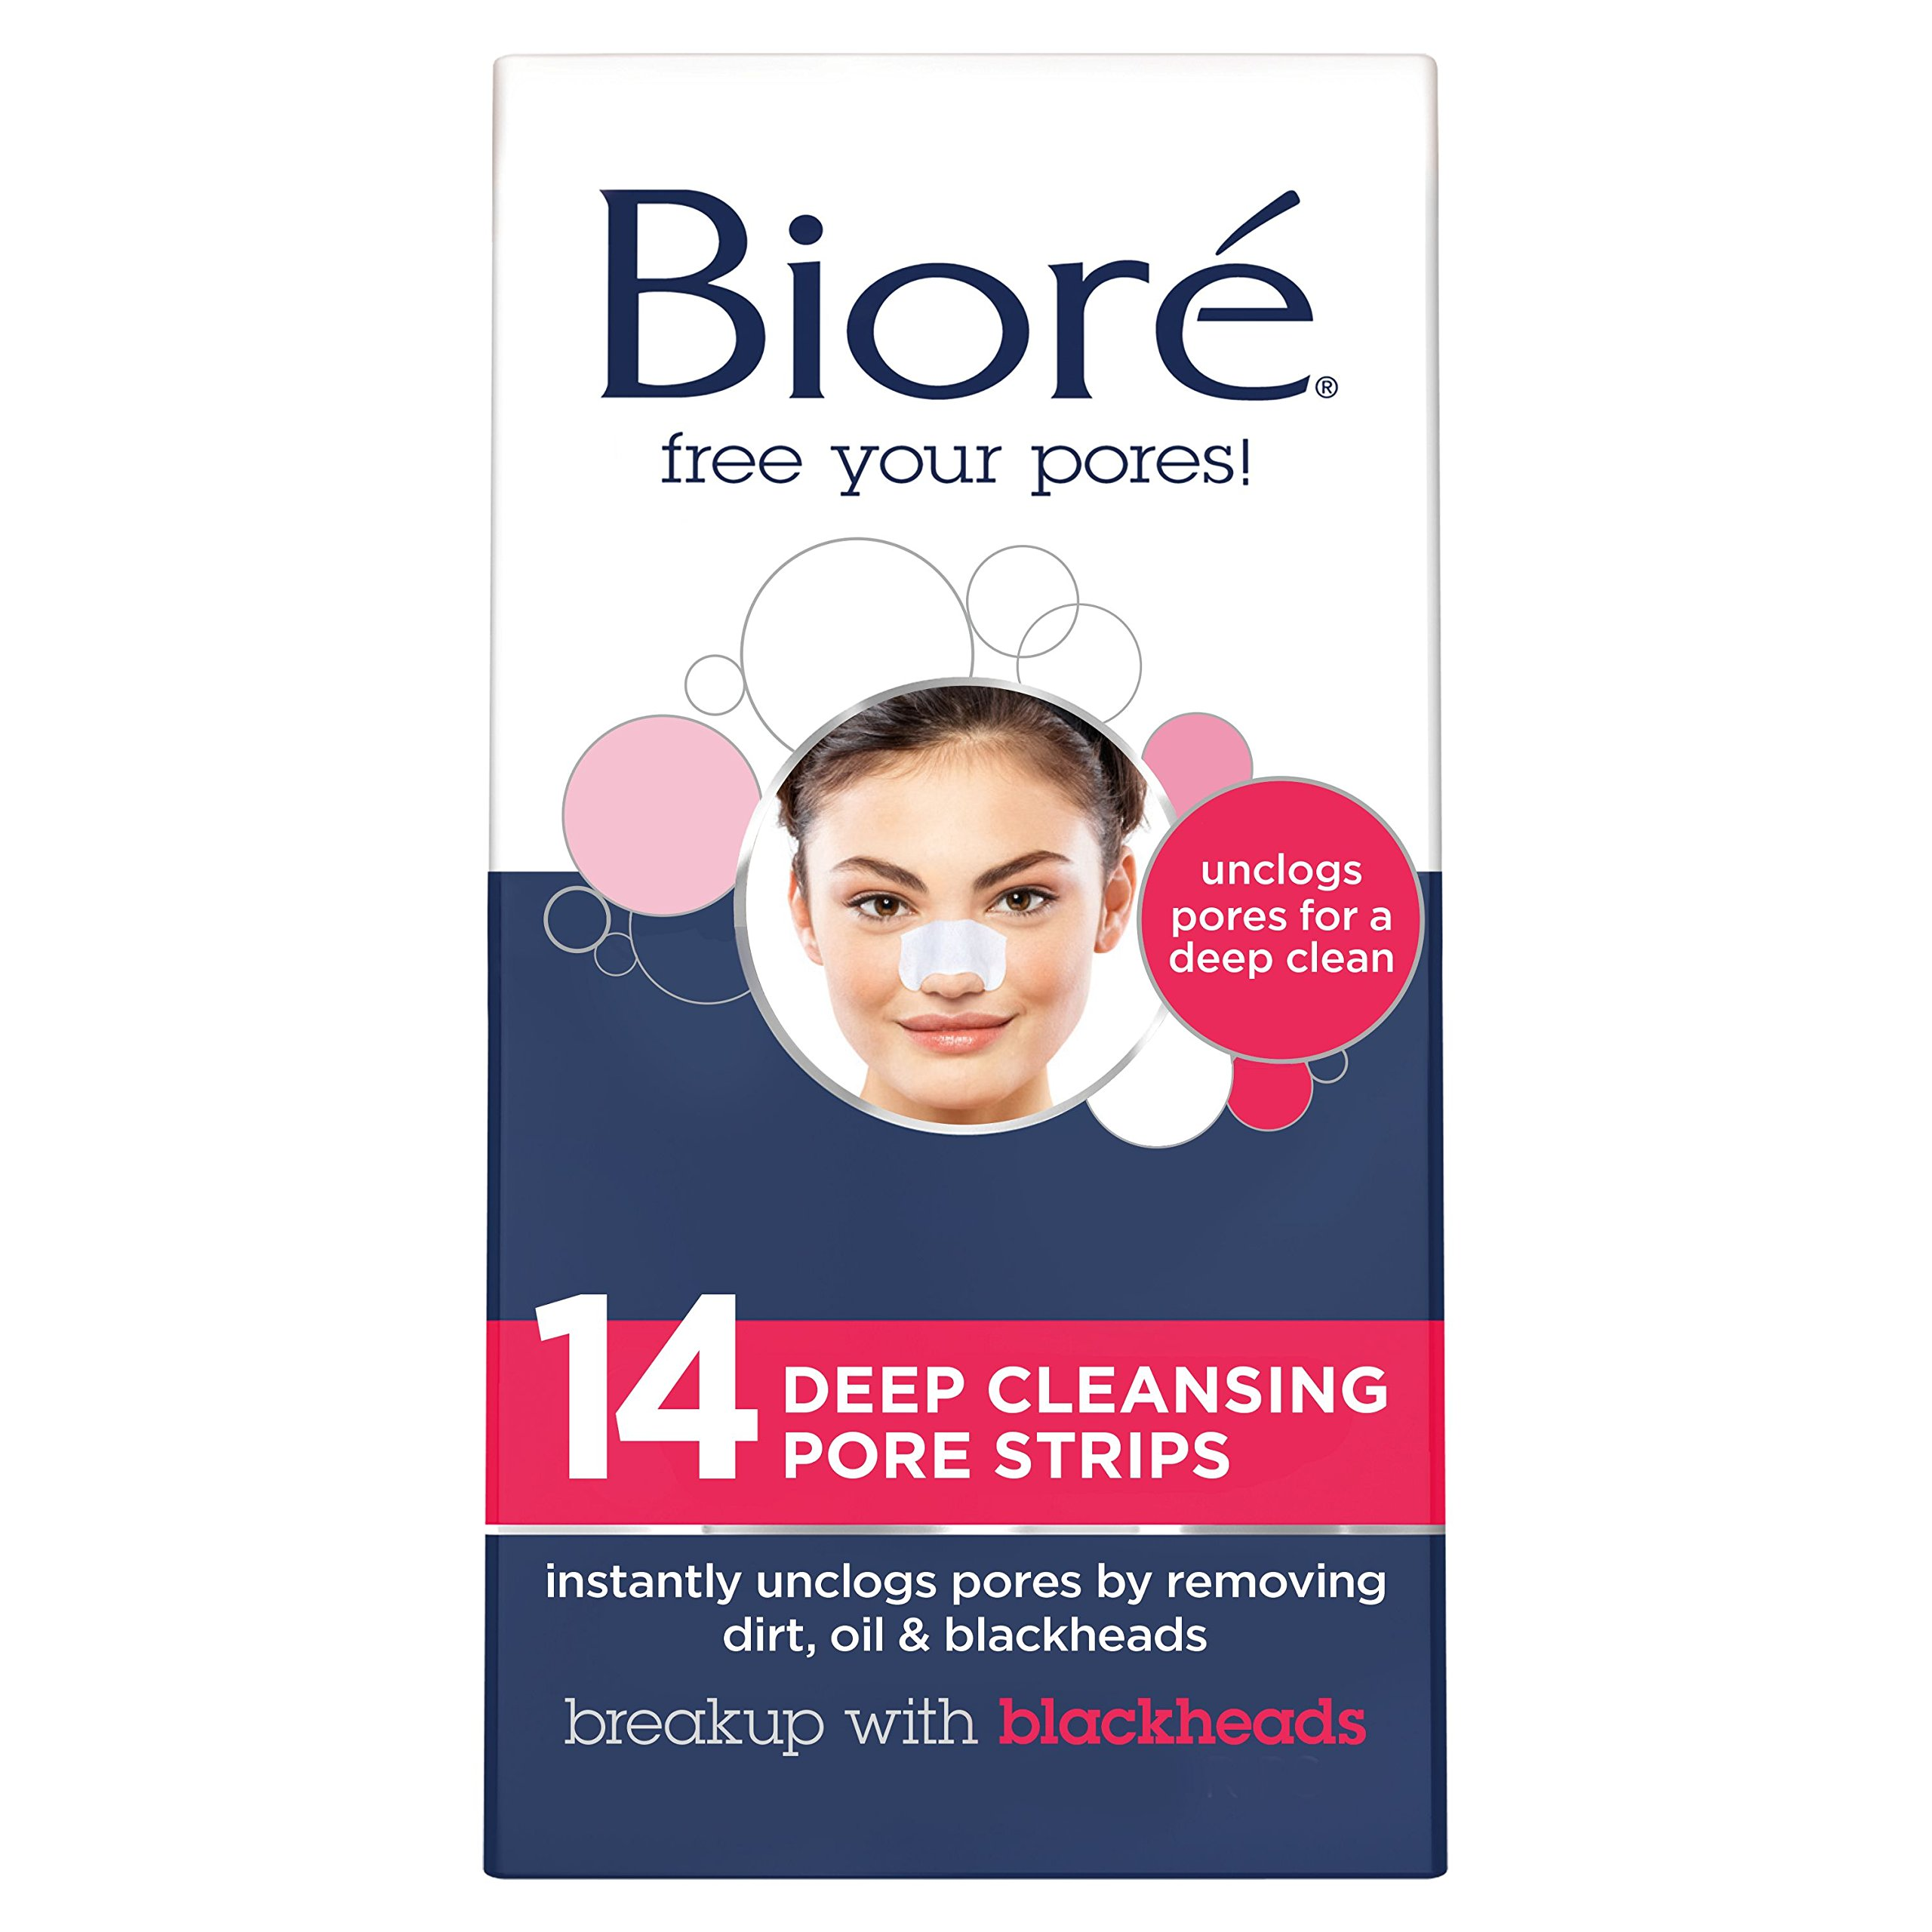 Biore Deep Cleansing Pore Strips for Nose, 14 Count